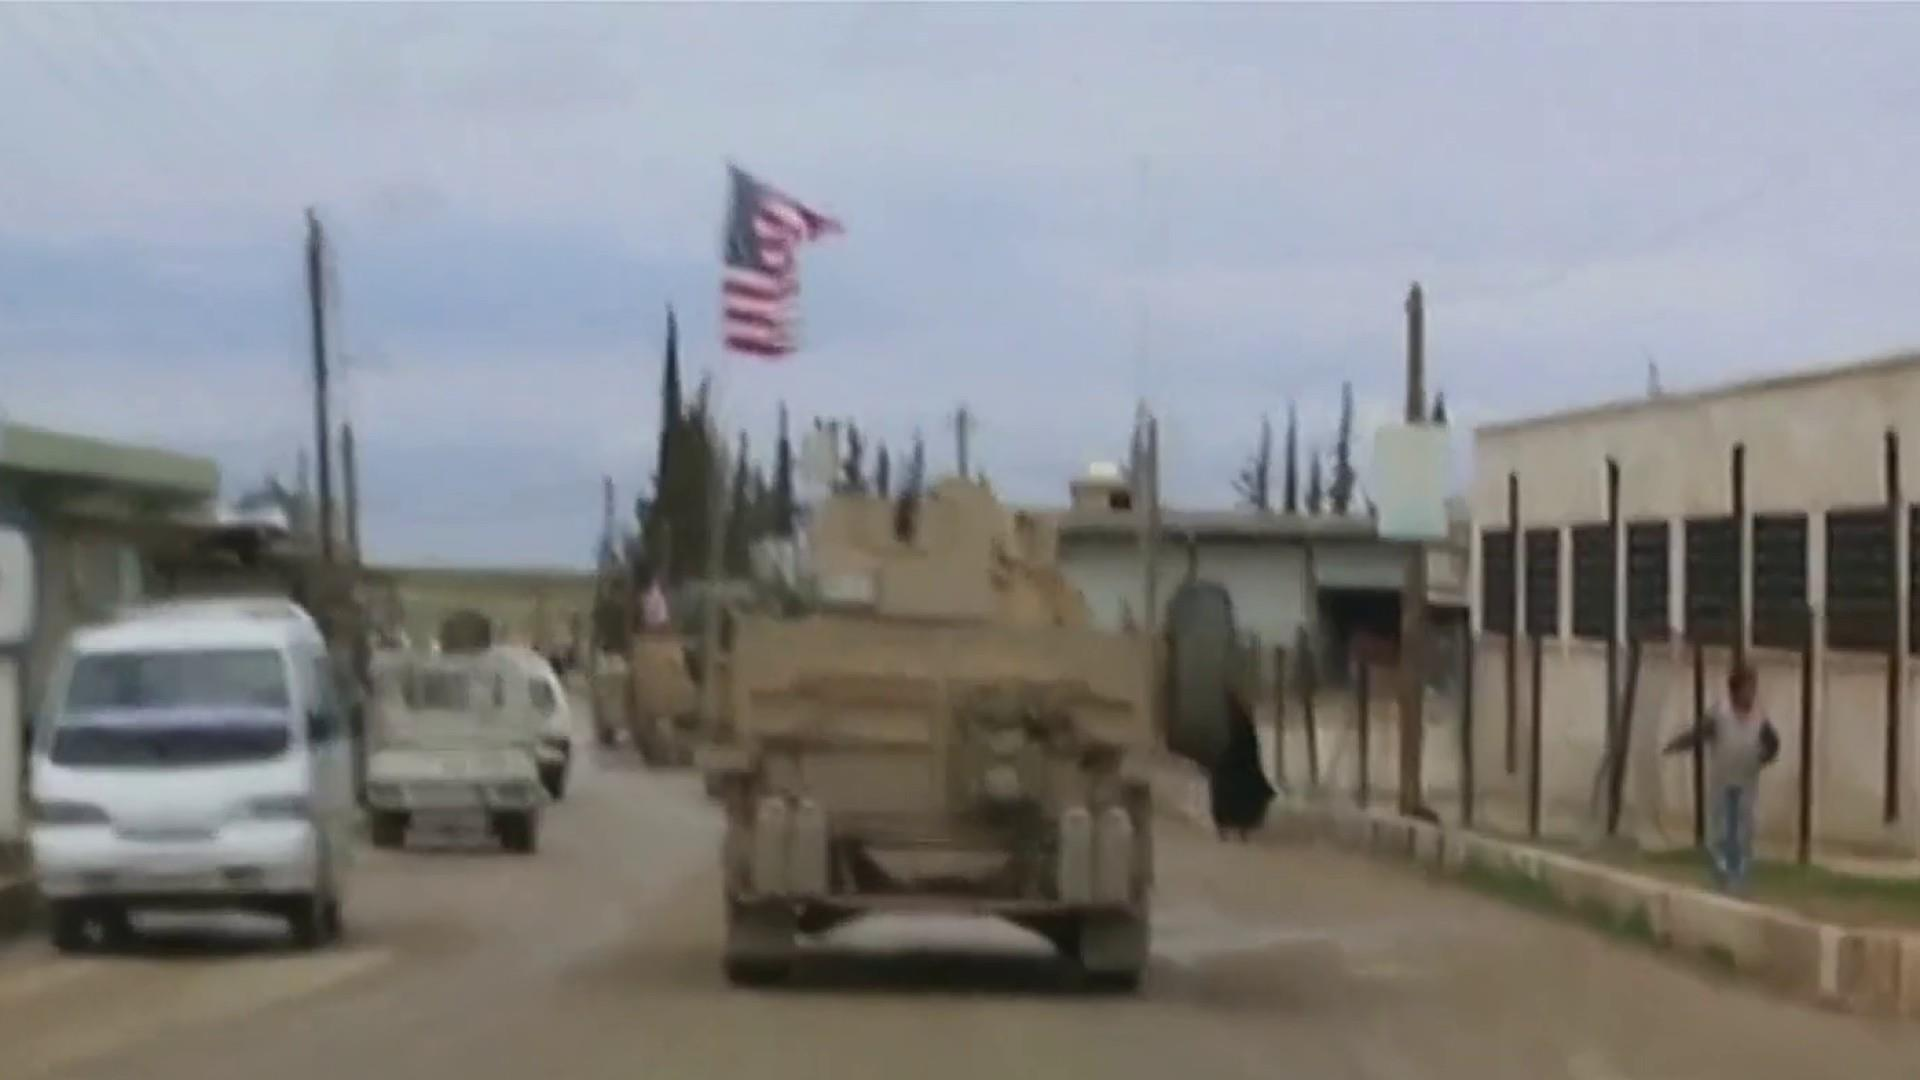 U.S. to withdraw troops from Syria, Trump declares ISIS 'defeated'